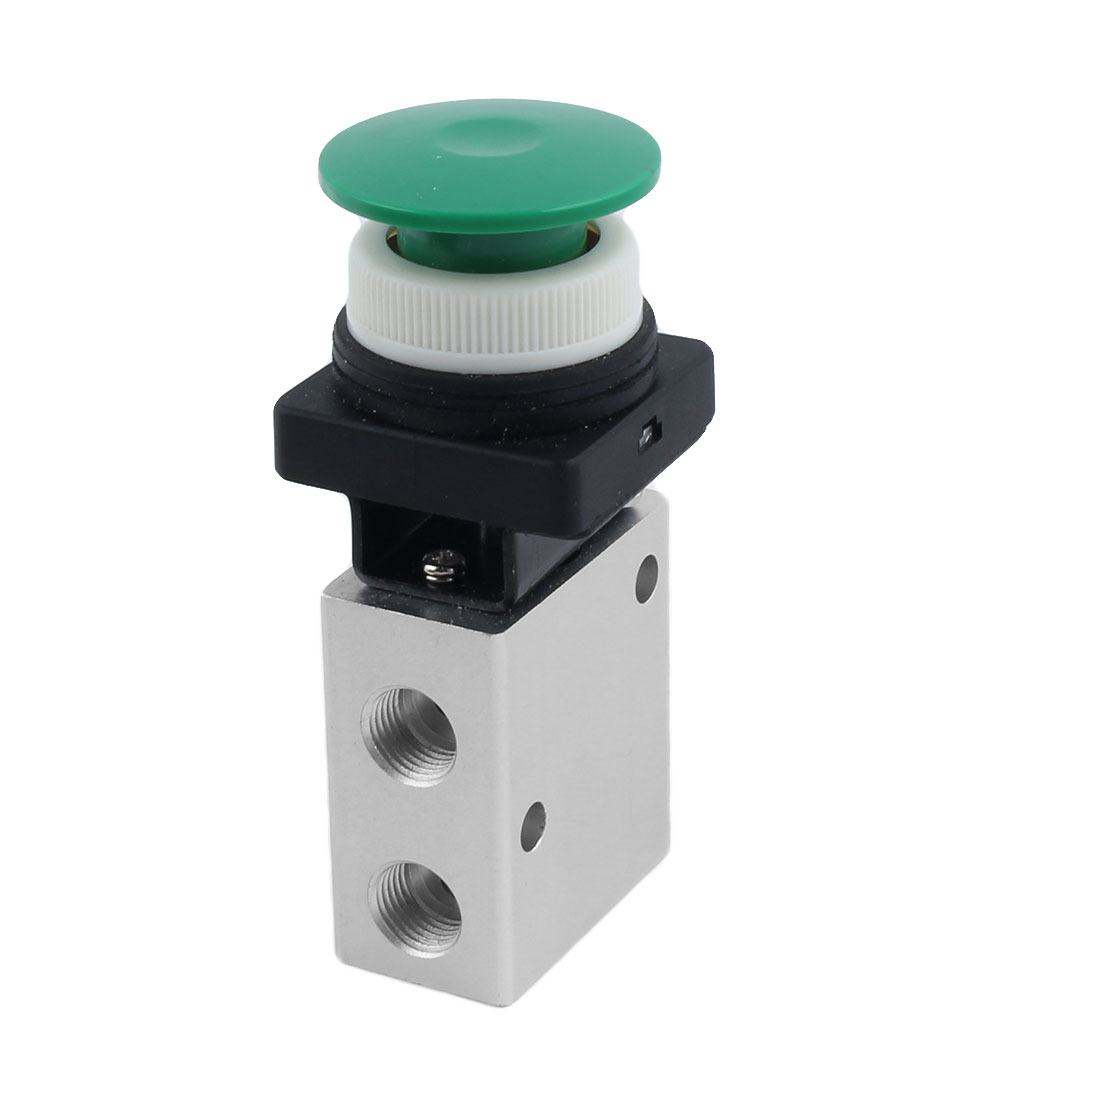 JM-322PB 13mm Thread 2 Position 3 Way Green Mushroom Button Air Mechanical Valve